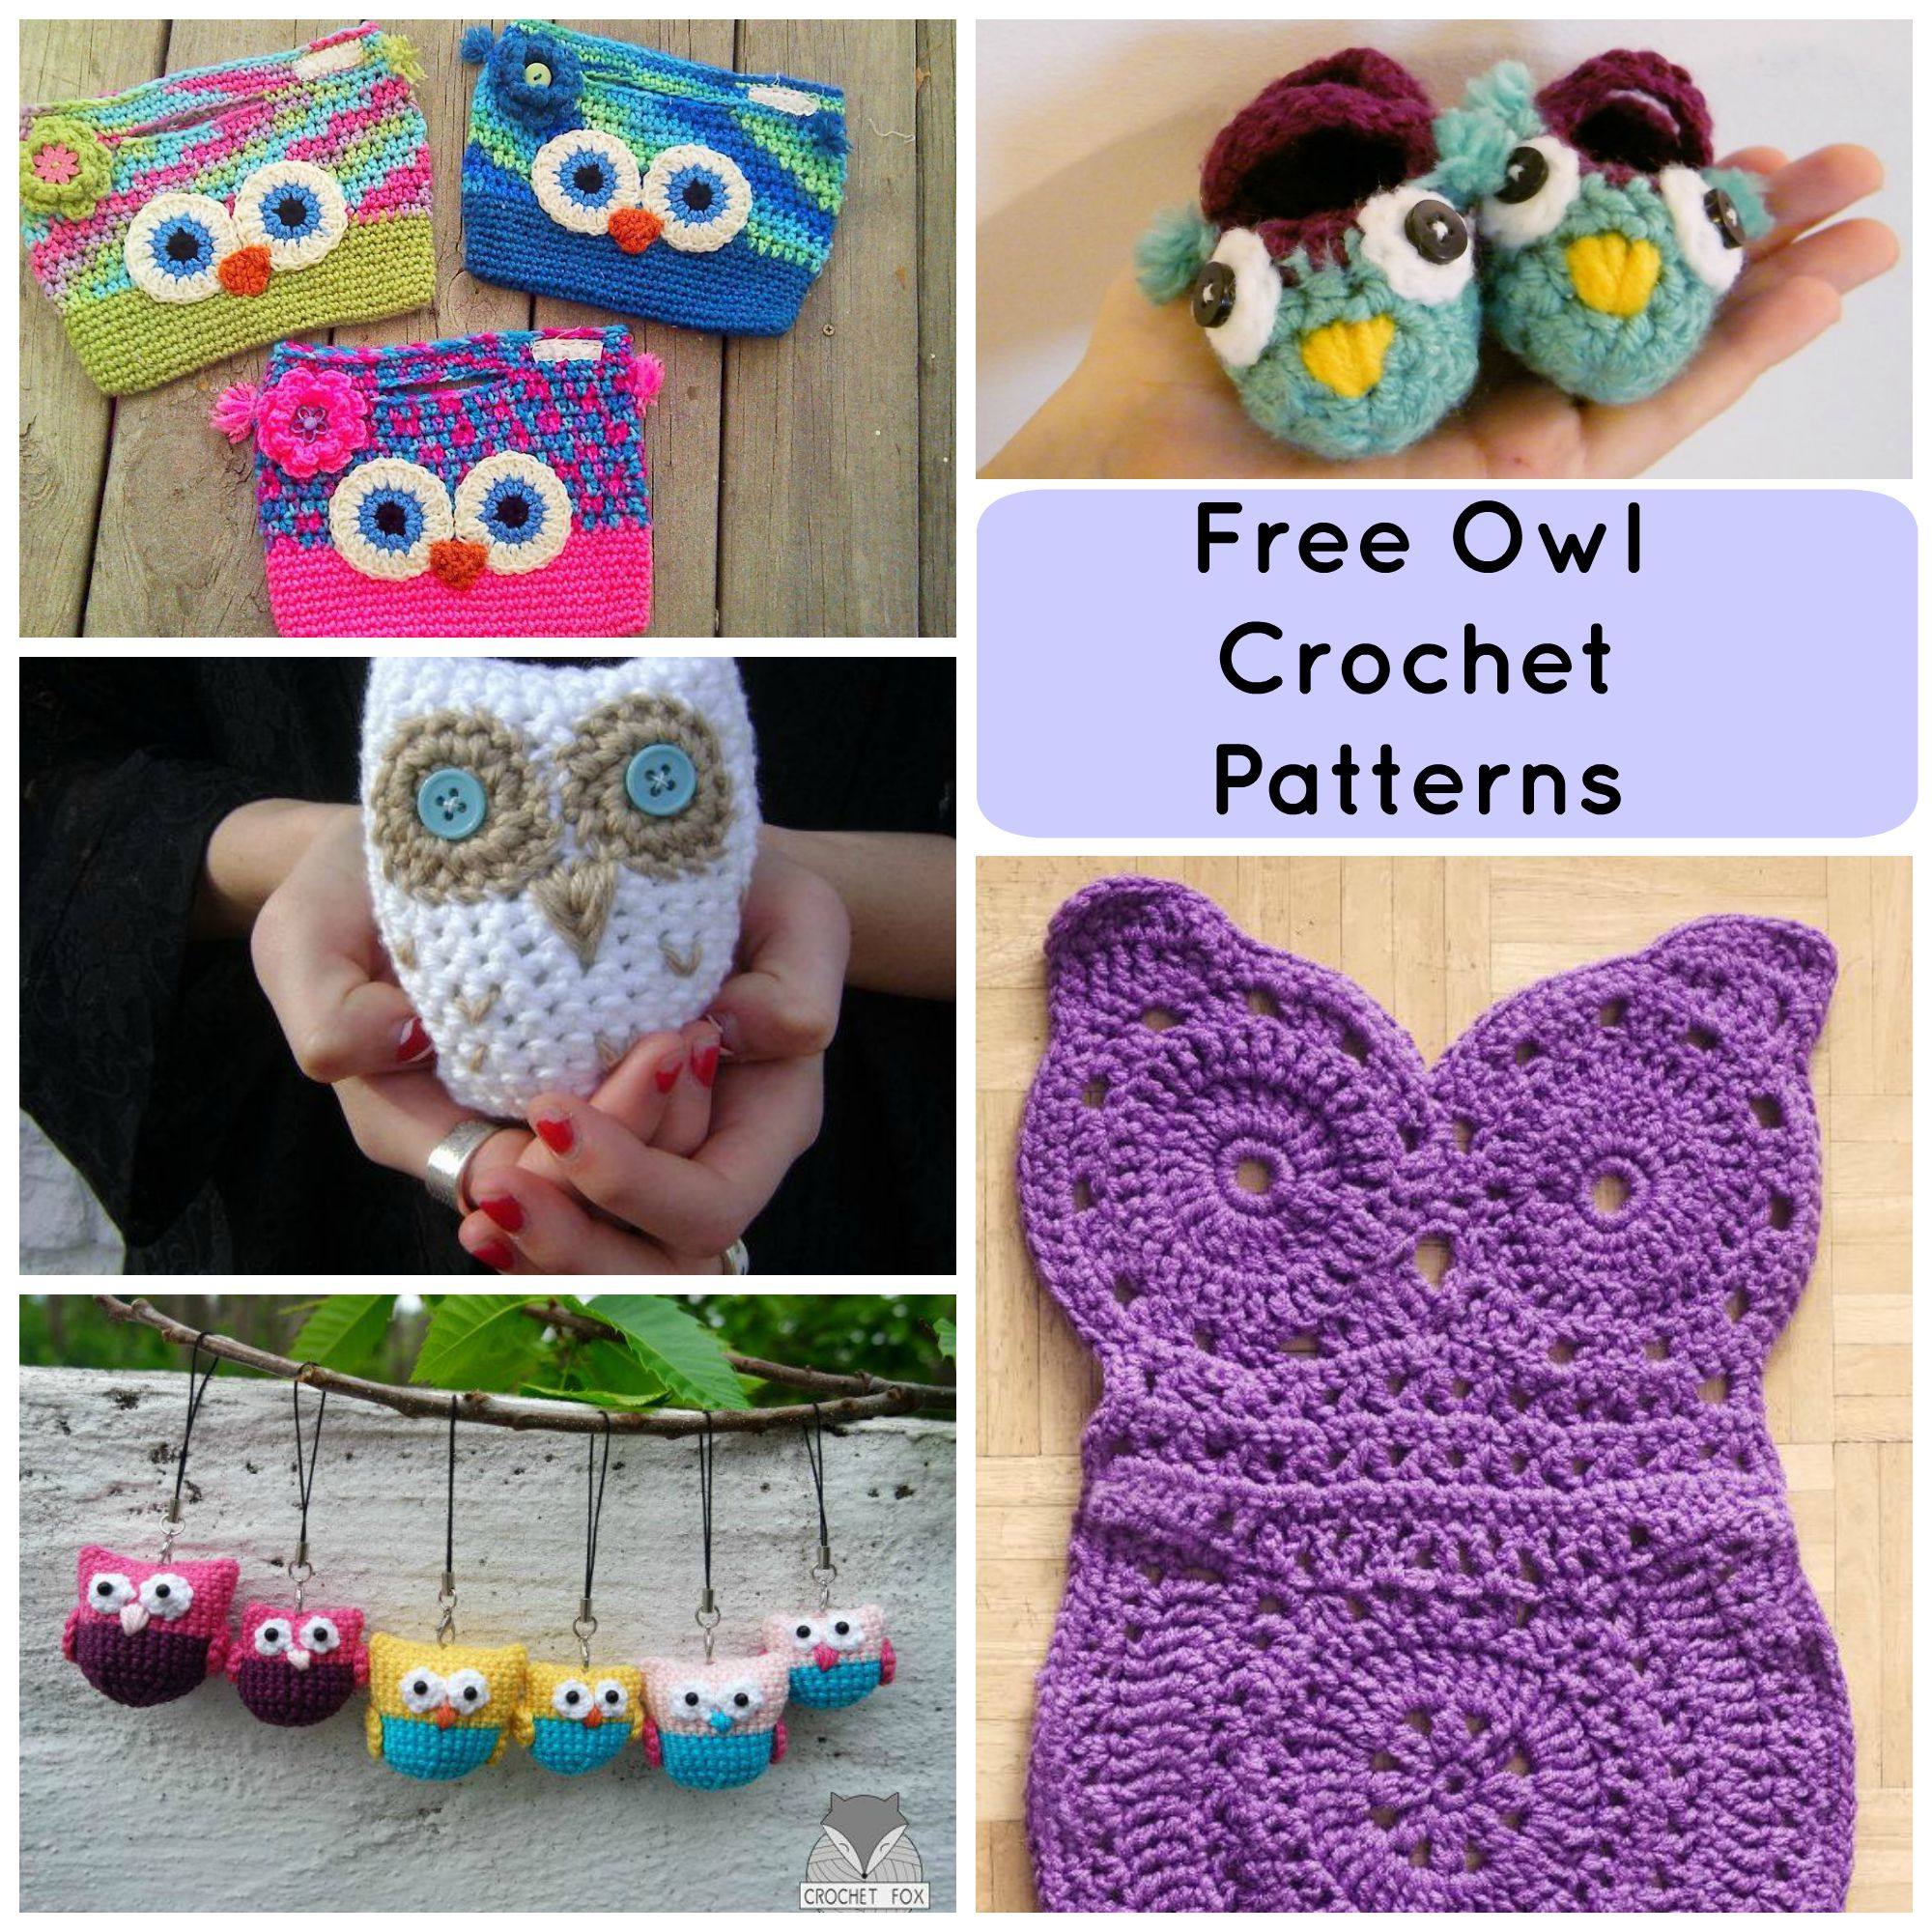 Crochet owl pattern 7 hoot-worthy free crochet owl patterns dypqbvl